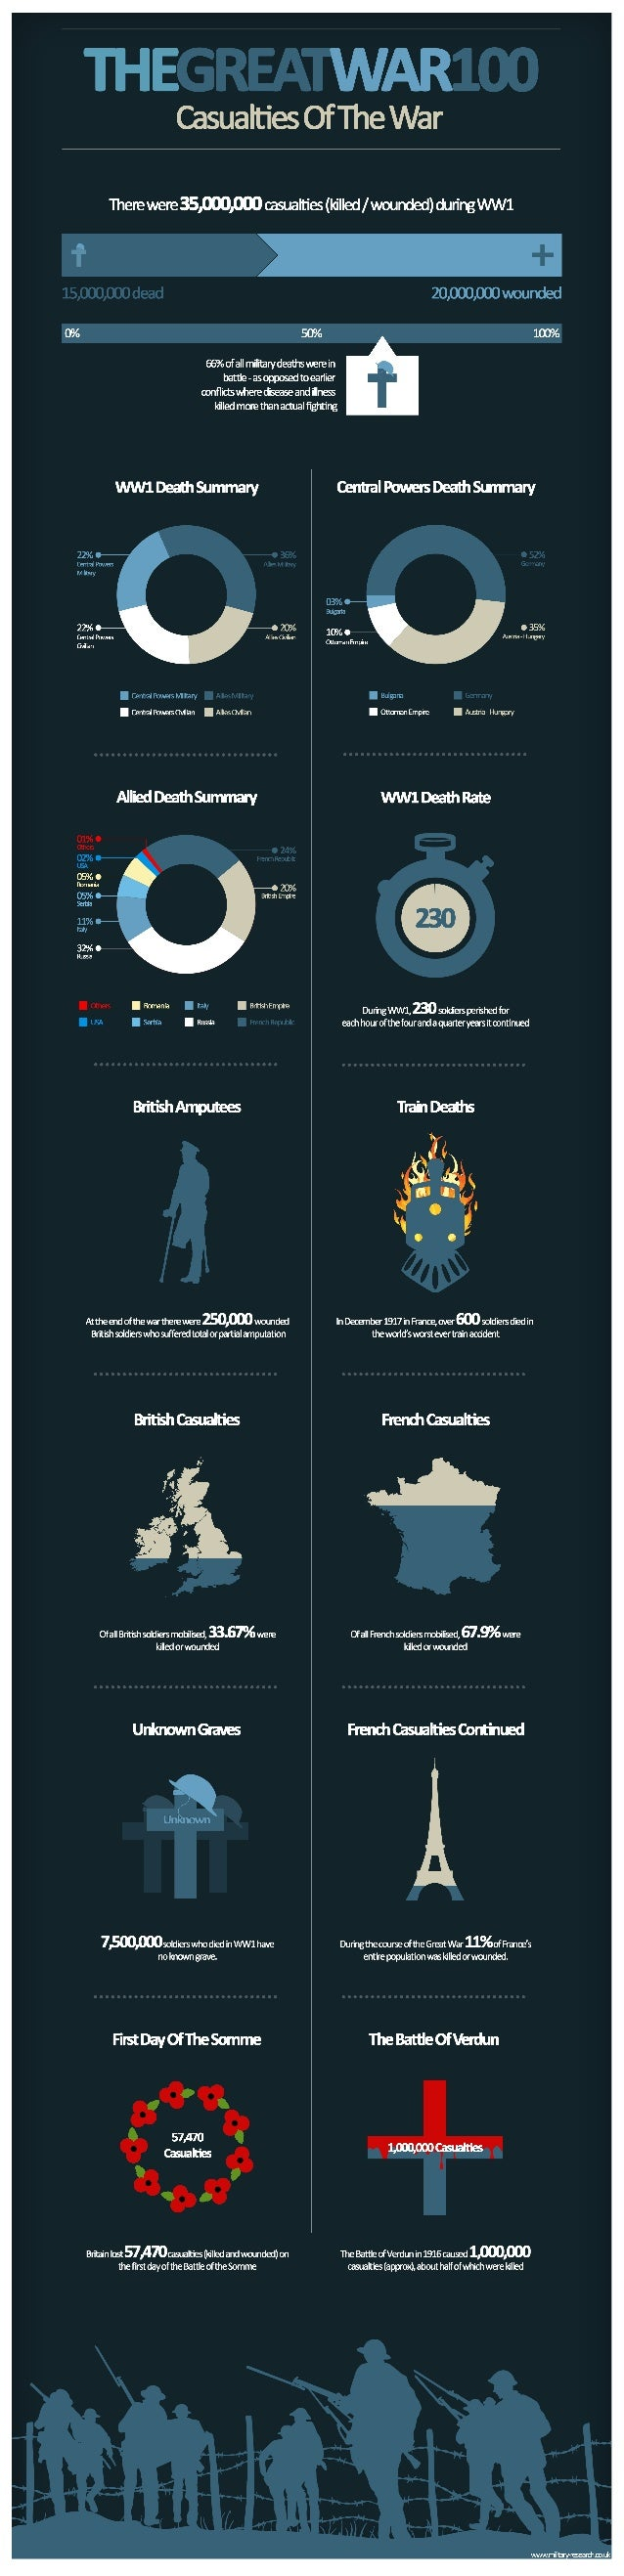 First World War infographic: Casualties